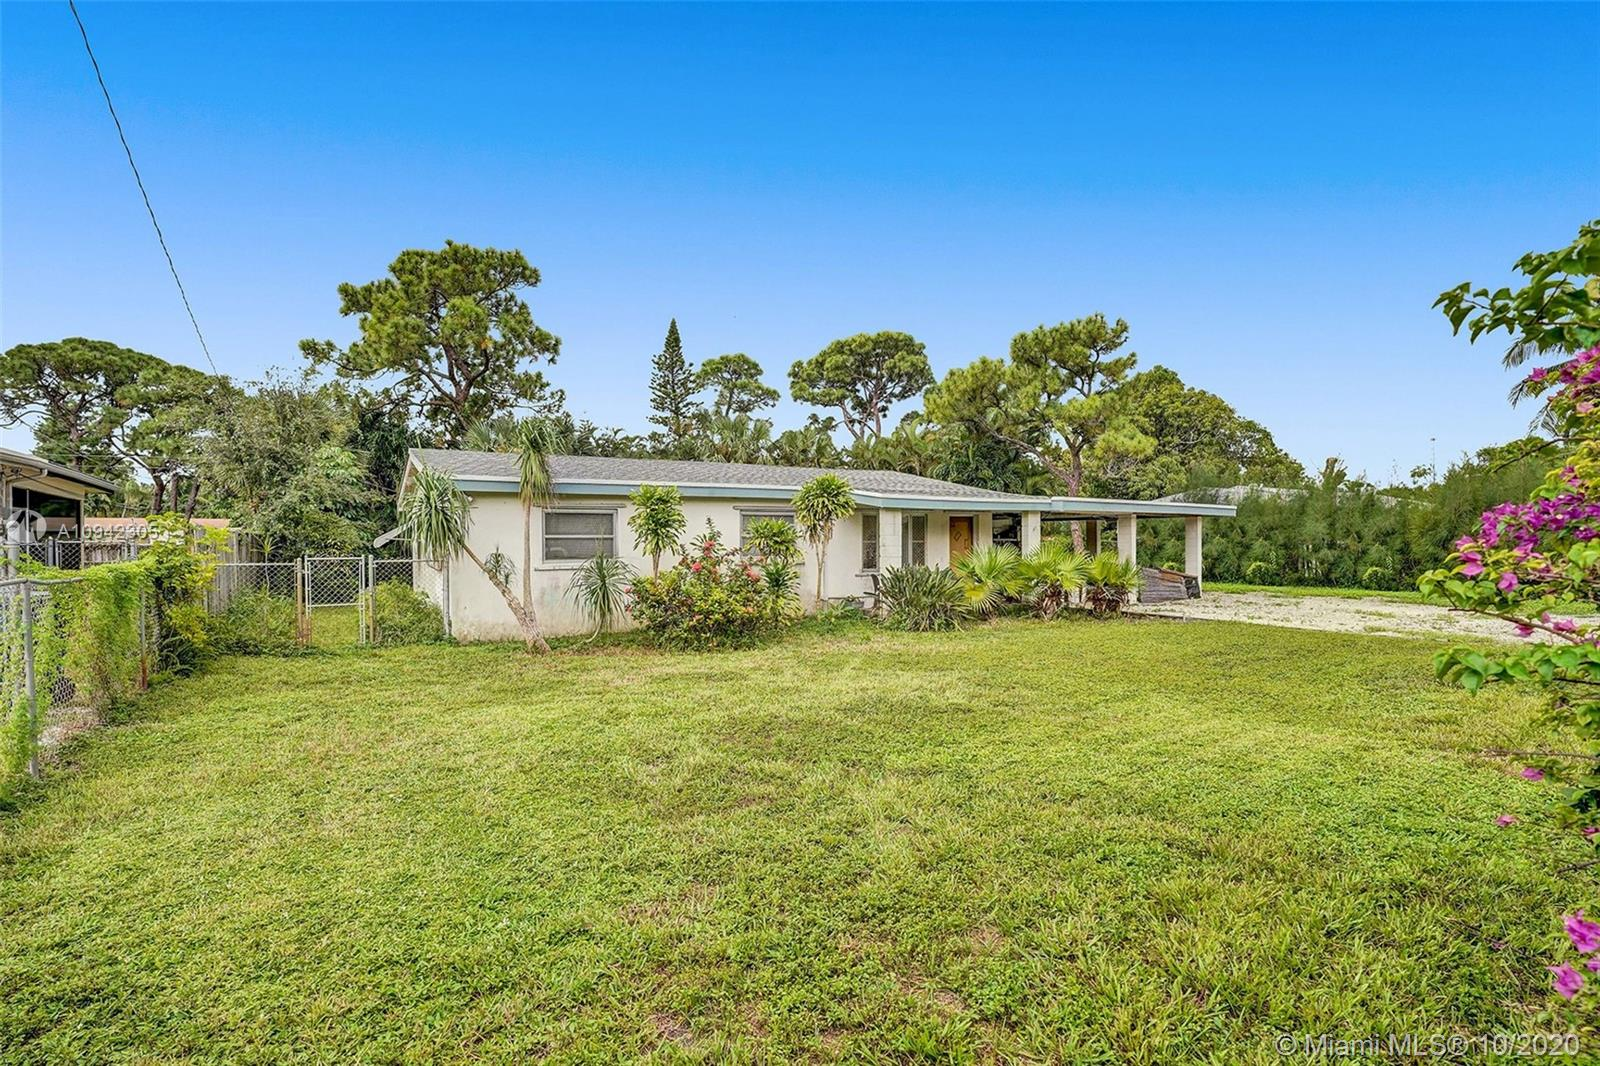 Opportunity awaits on this 1/3 of an acre property in Oakland Park. This oversized lot has plenty of room for a pool and expansion. This efficient floor plan has 4 bedrooms & a den / family room. New roof installed in 2018. Large 2 car carport with utility & storage rooms. Convenient location close to Highways & a few miles to the beach.